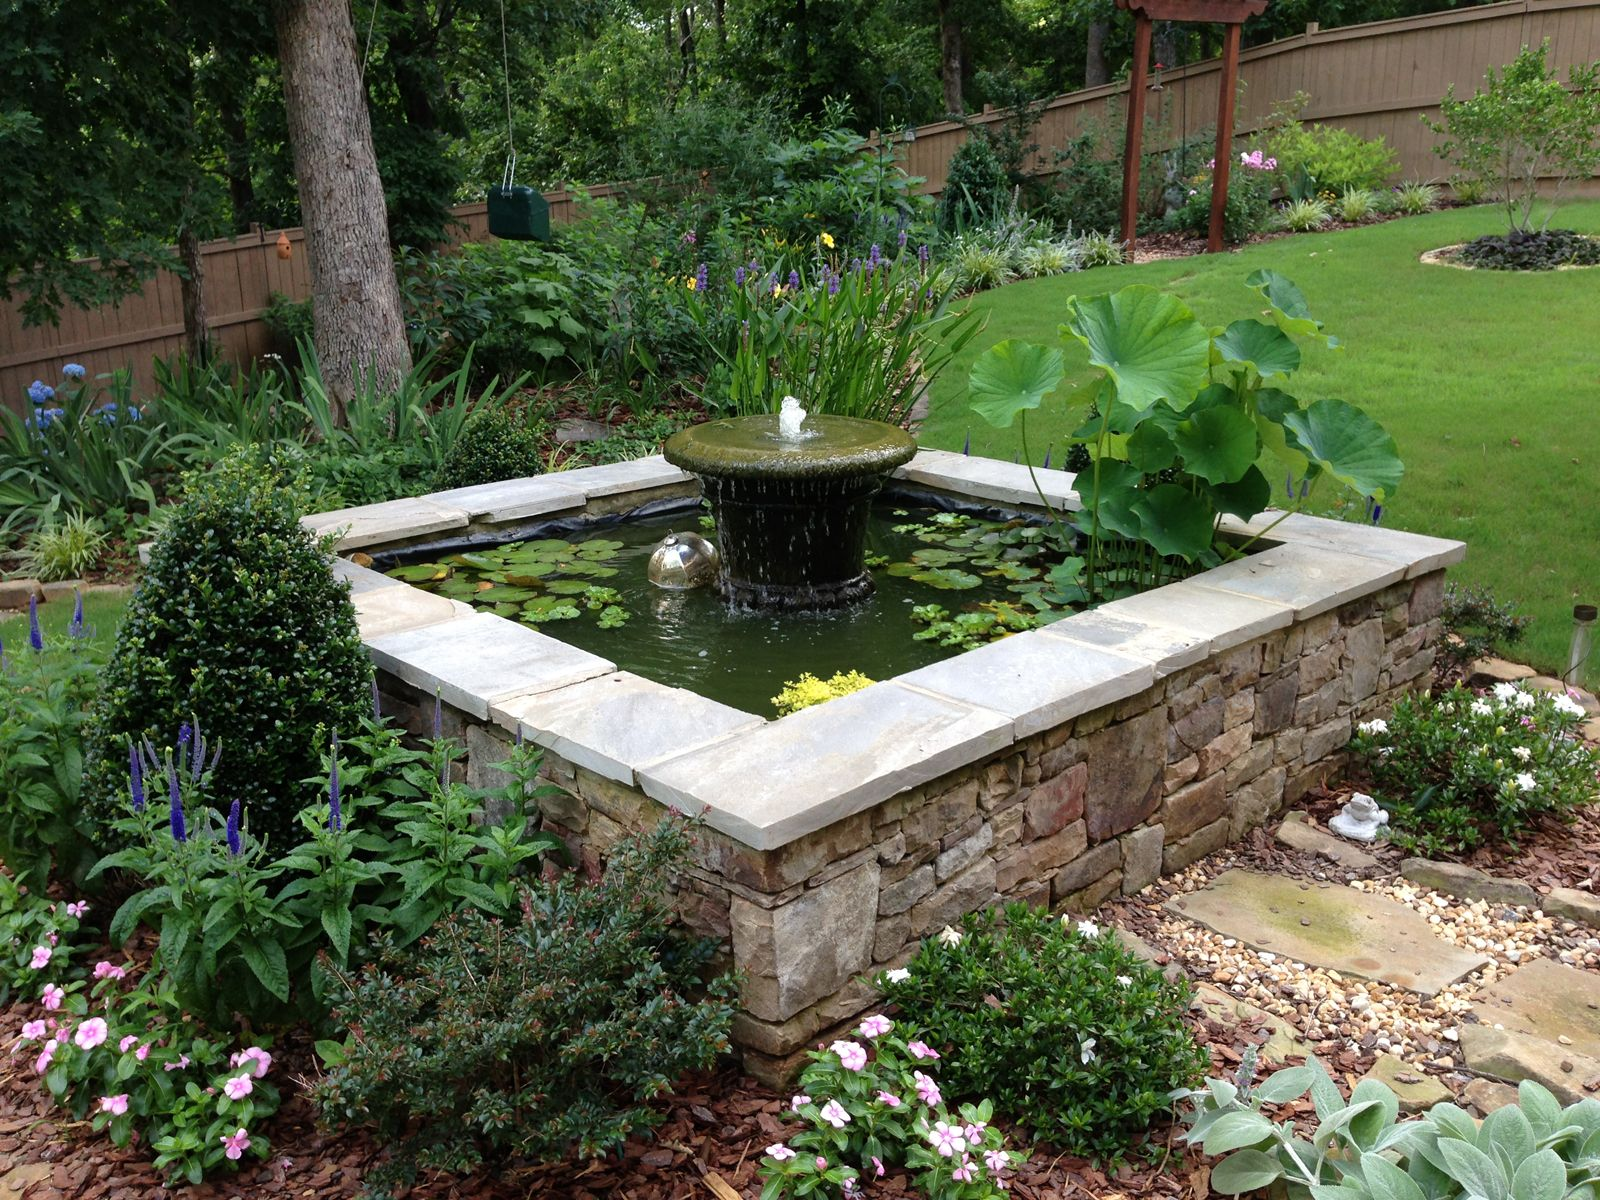 Square water pool carol bill 39 s garden in georgia for Pond with fountain